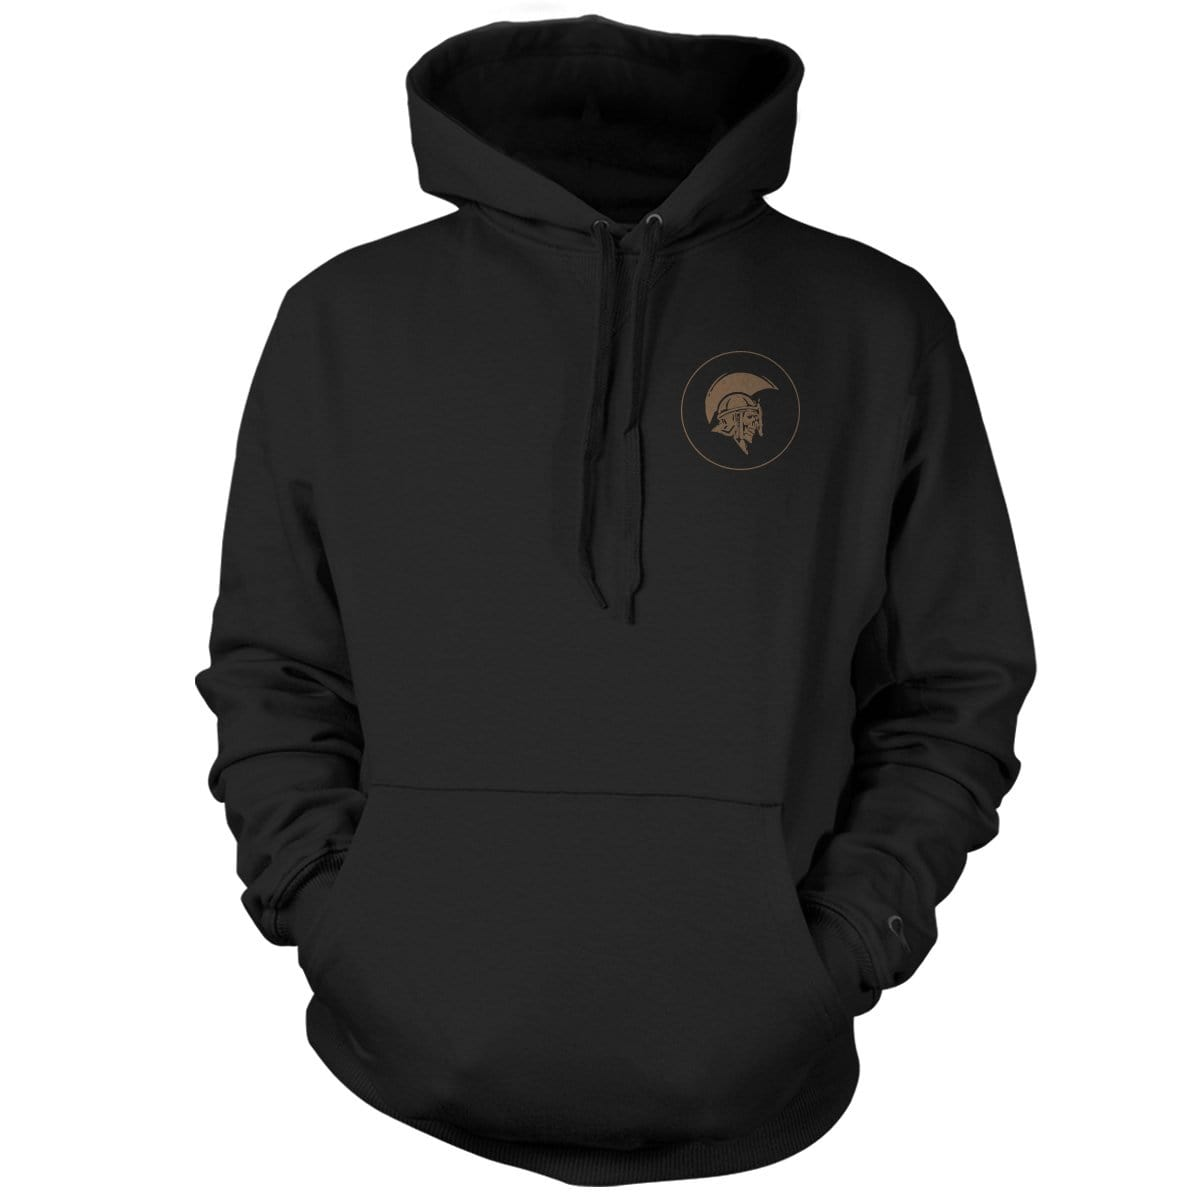 PHUMC Centurions Chapter Hoodie - Pipe Hitters Union